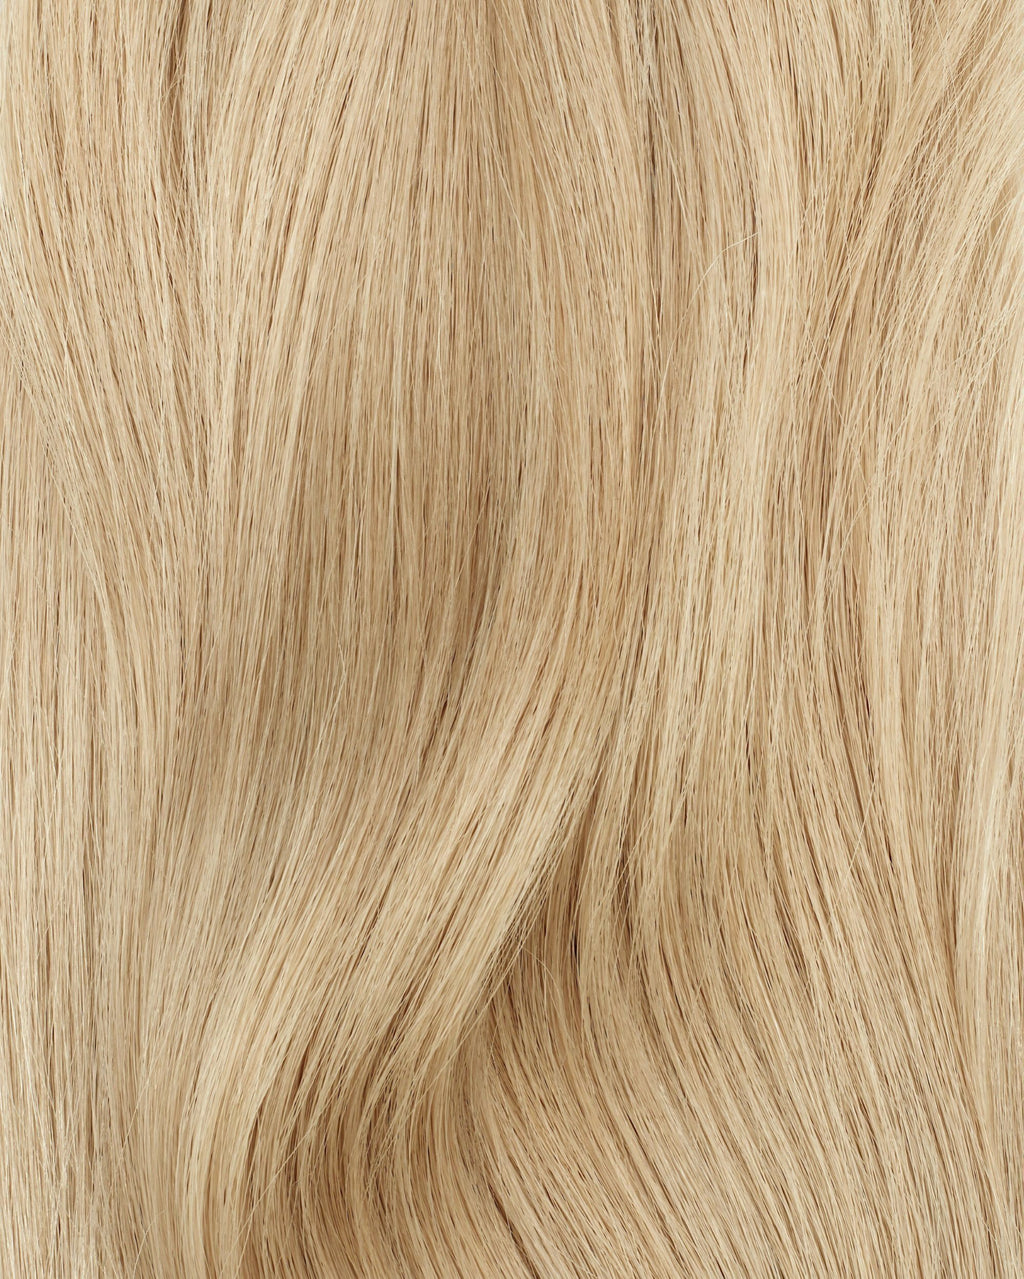 Dirty Blonde (#19C) Invisible Tape (25g) 20""